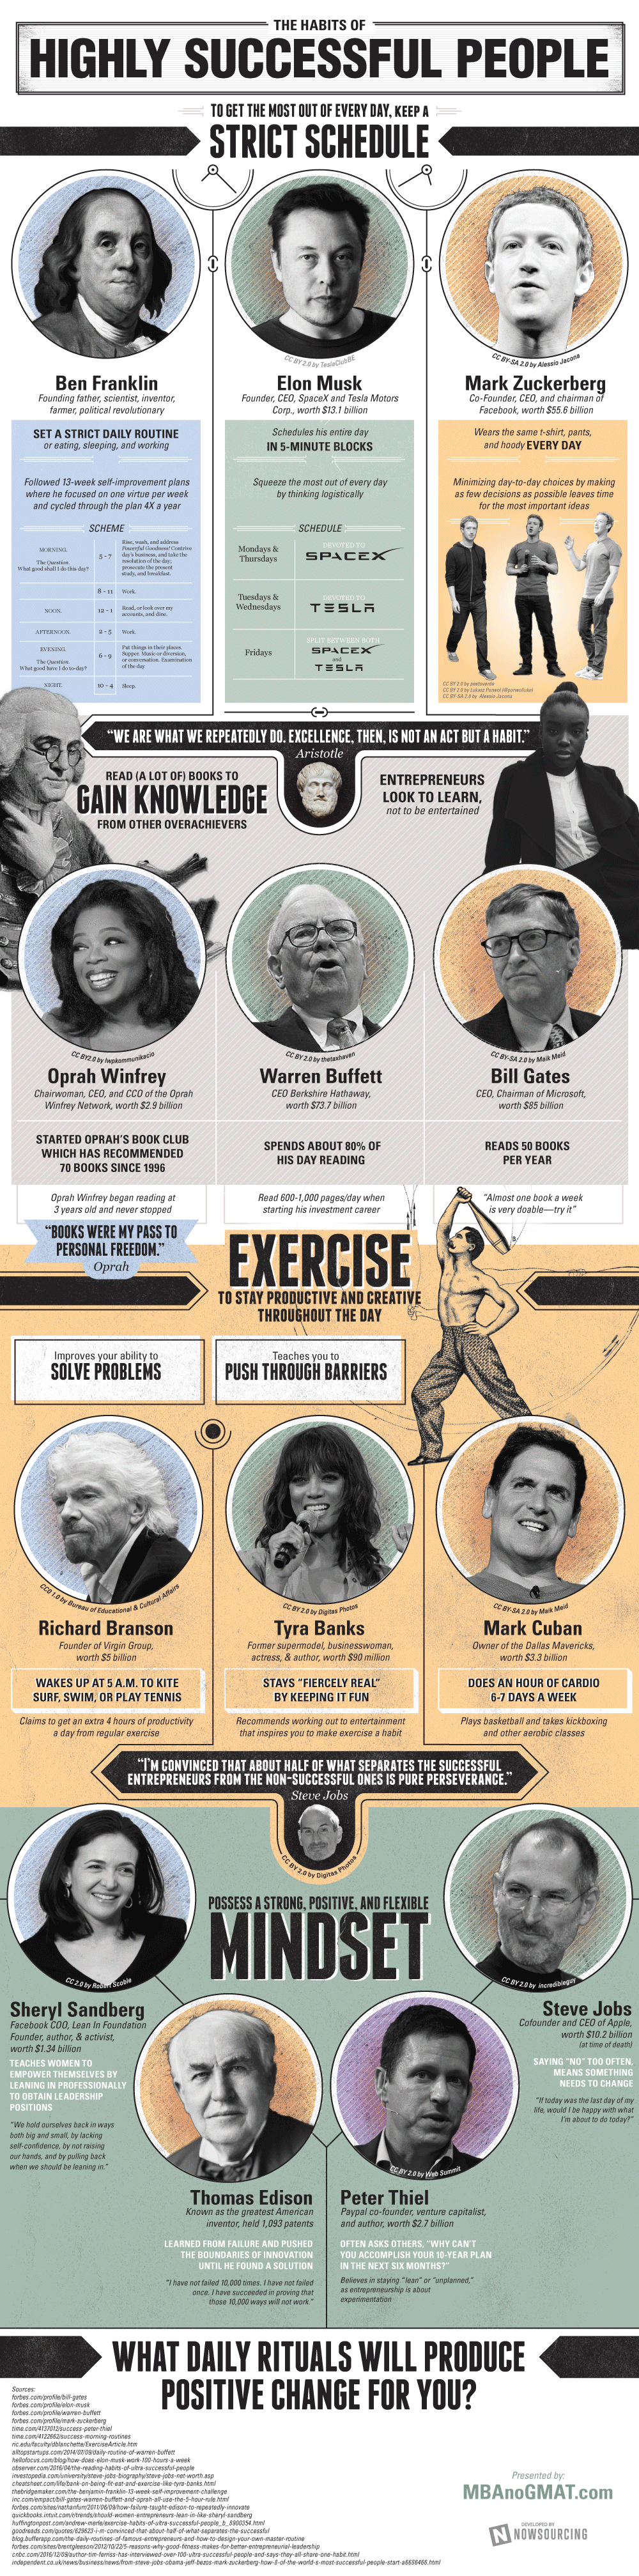 13 Highly Successful People And Their Habits - Infographic